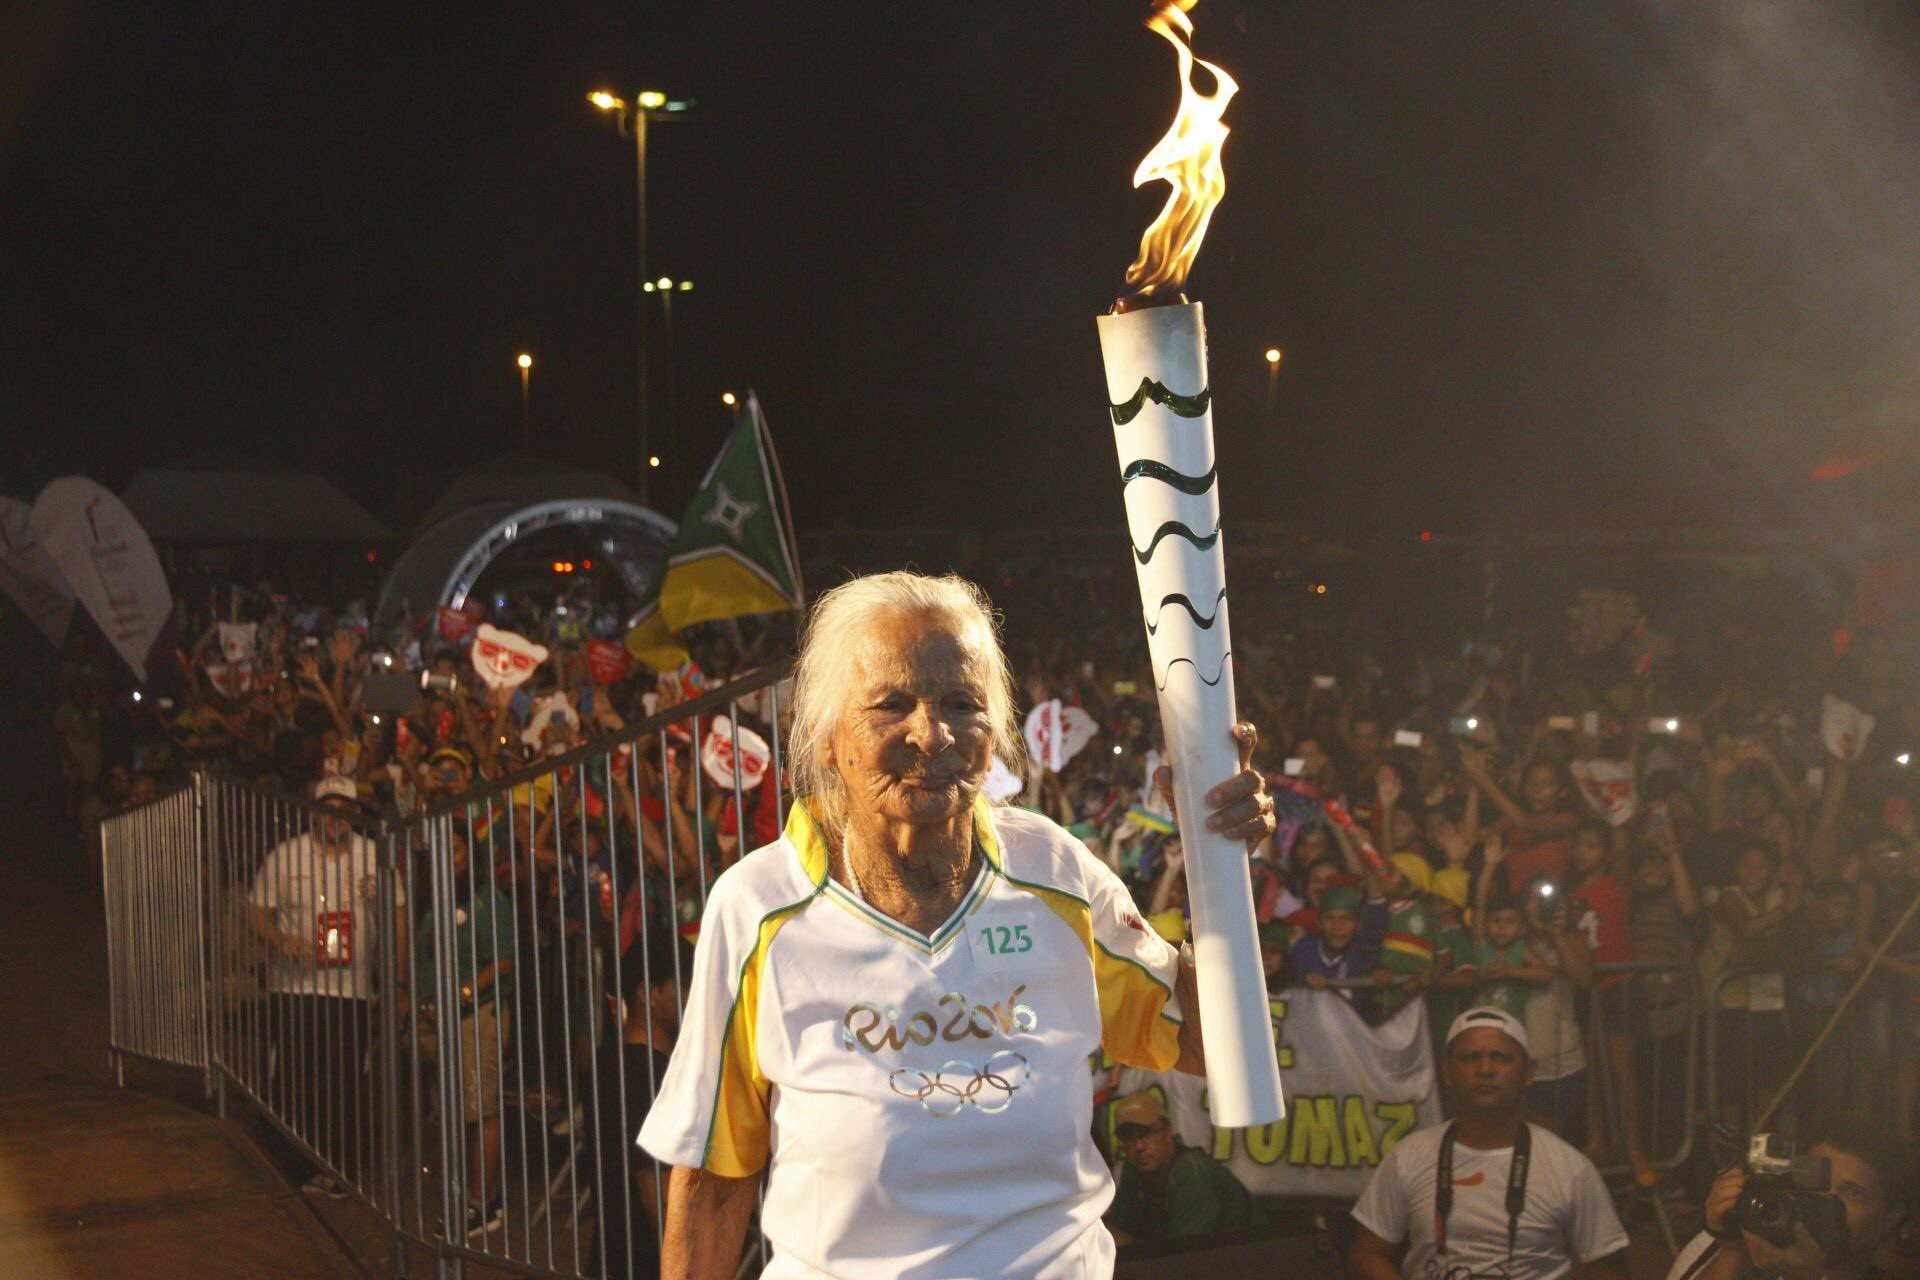 If Kane Tanaka carries the Torch as part of next year's rescheduled Relay, she would succeed Aida Mendes, 107, as the oldest Torchbearer ©Rio 2016